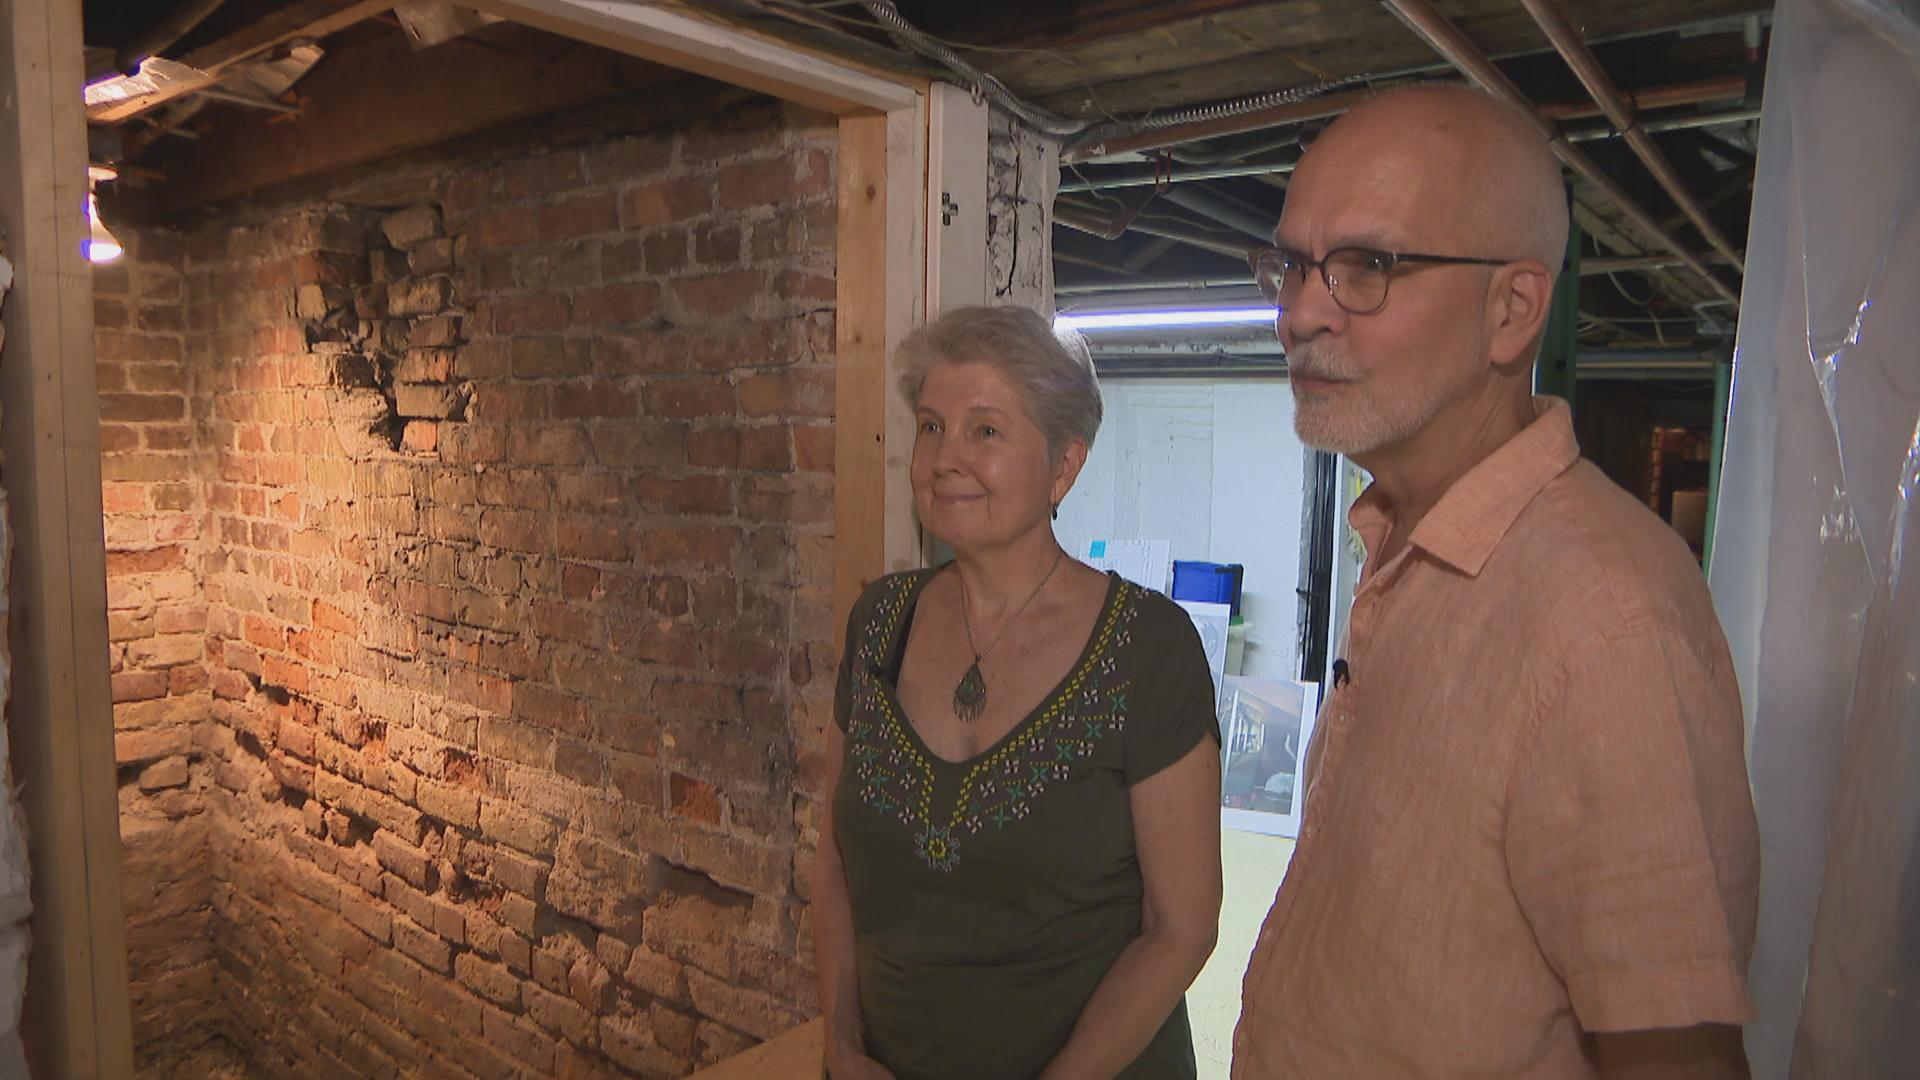 Could this strange brick room in Old Irving Park have been a station along the Underground Railroad more than 160 years ago?